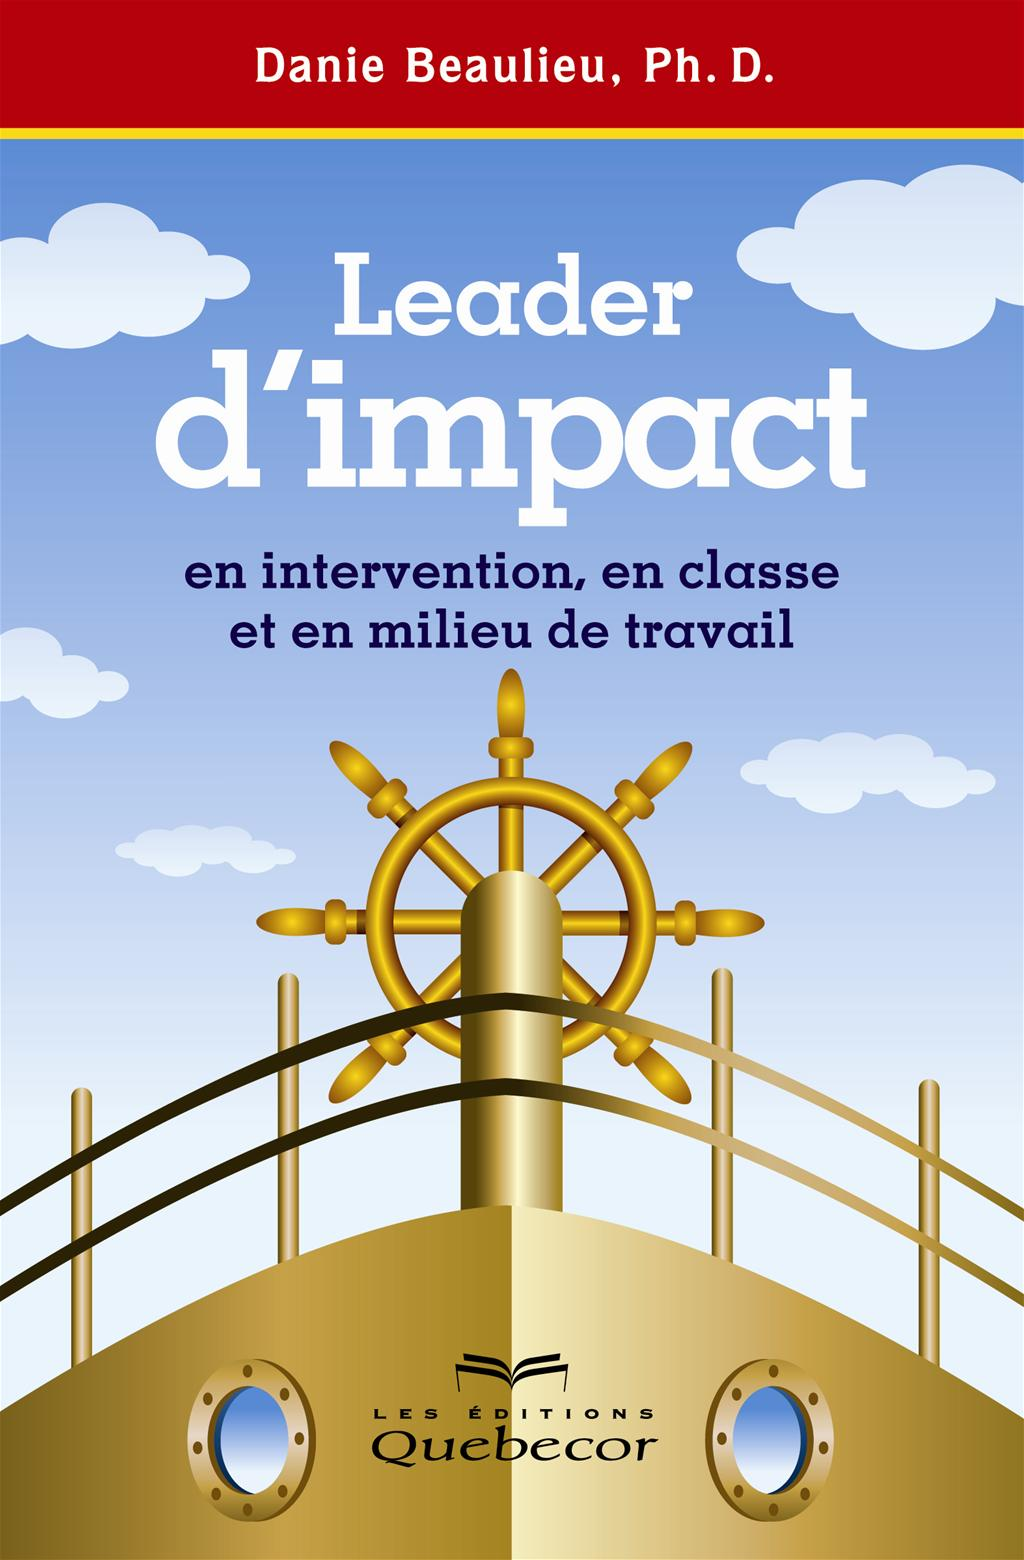 Leader d'impact en intervention, en classe et en milieu de travail